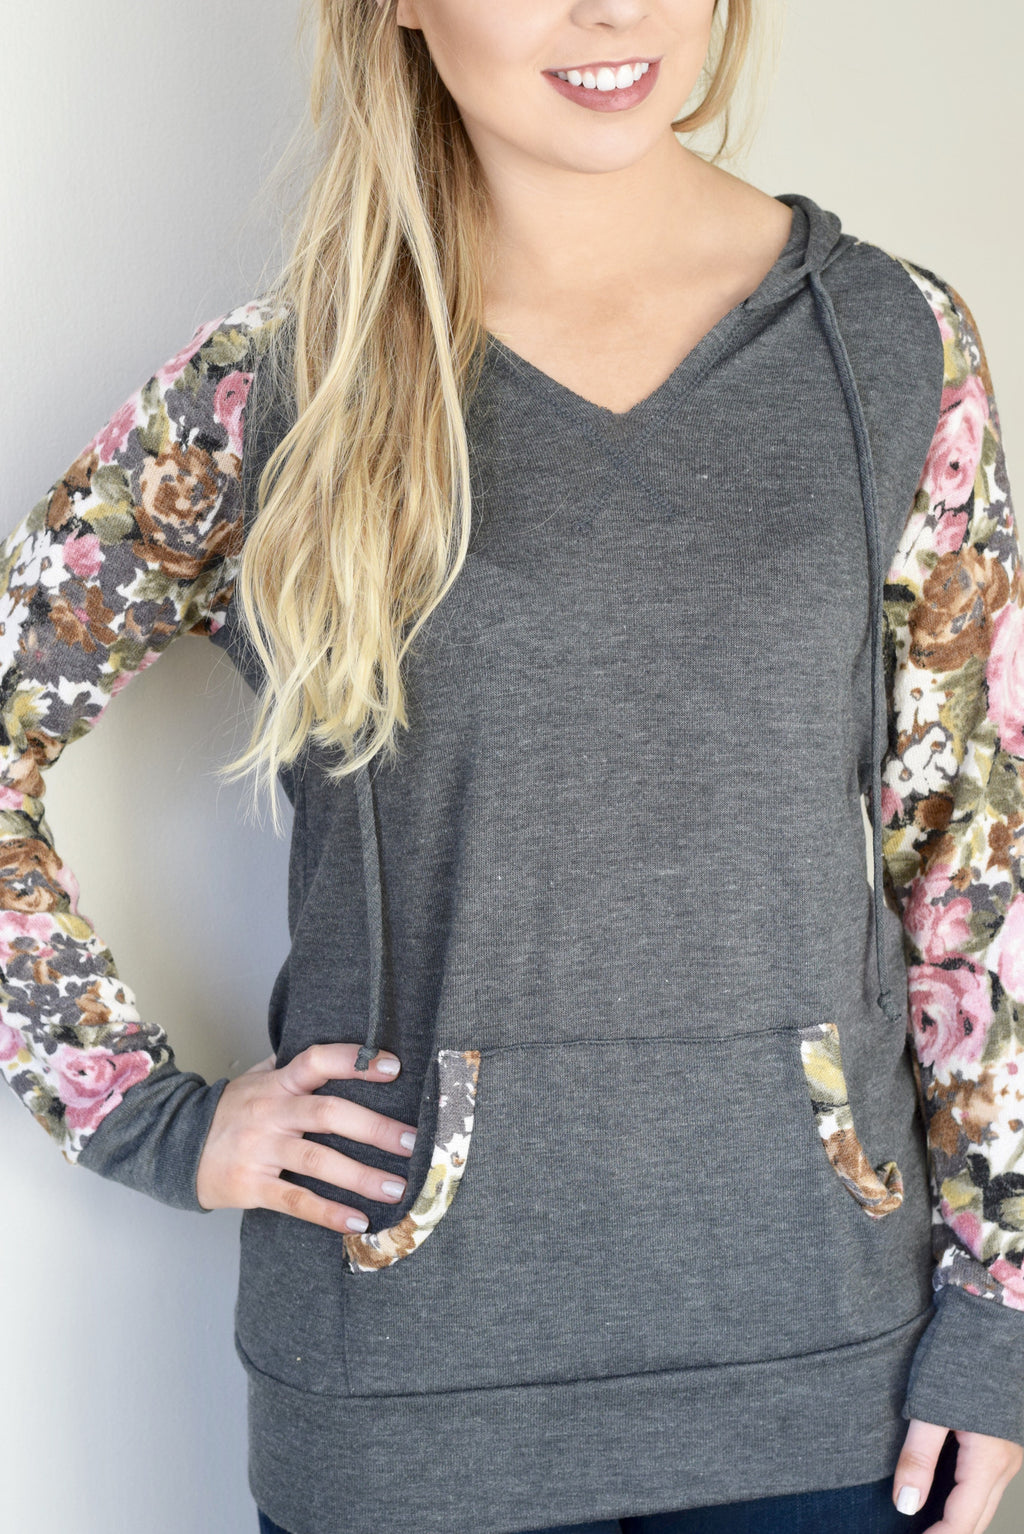 Floral Pop Hoodie - Mint Pop Shop